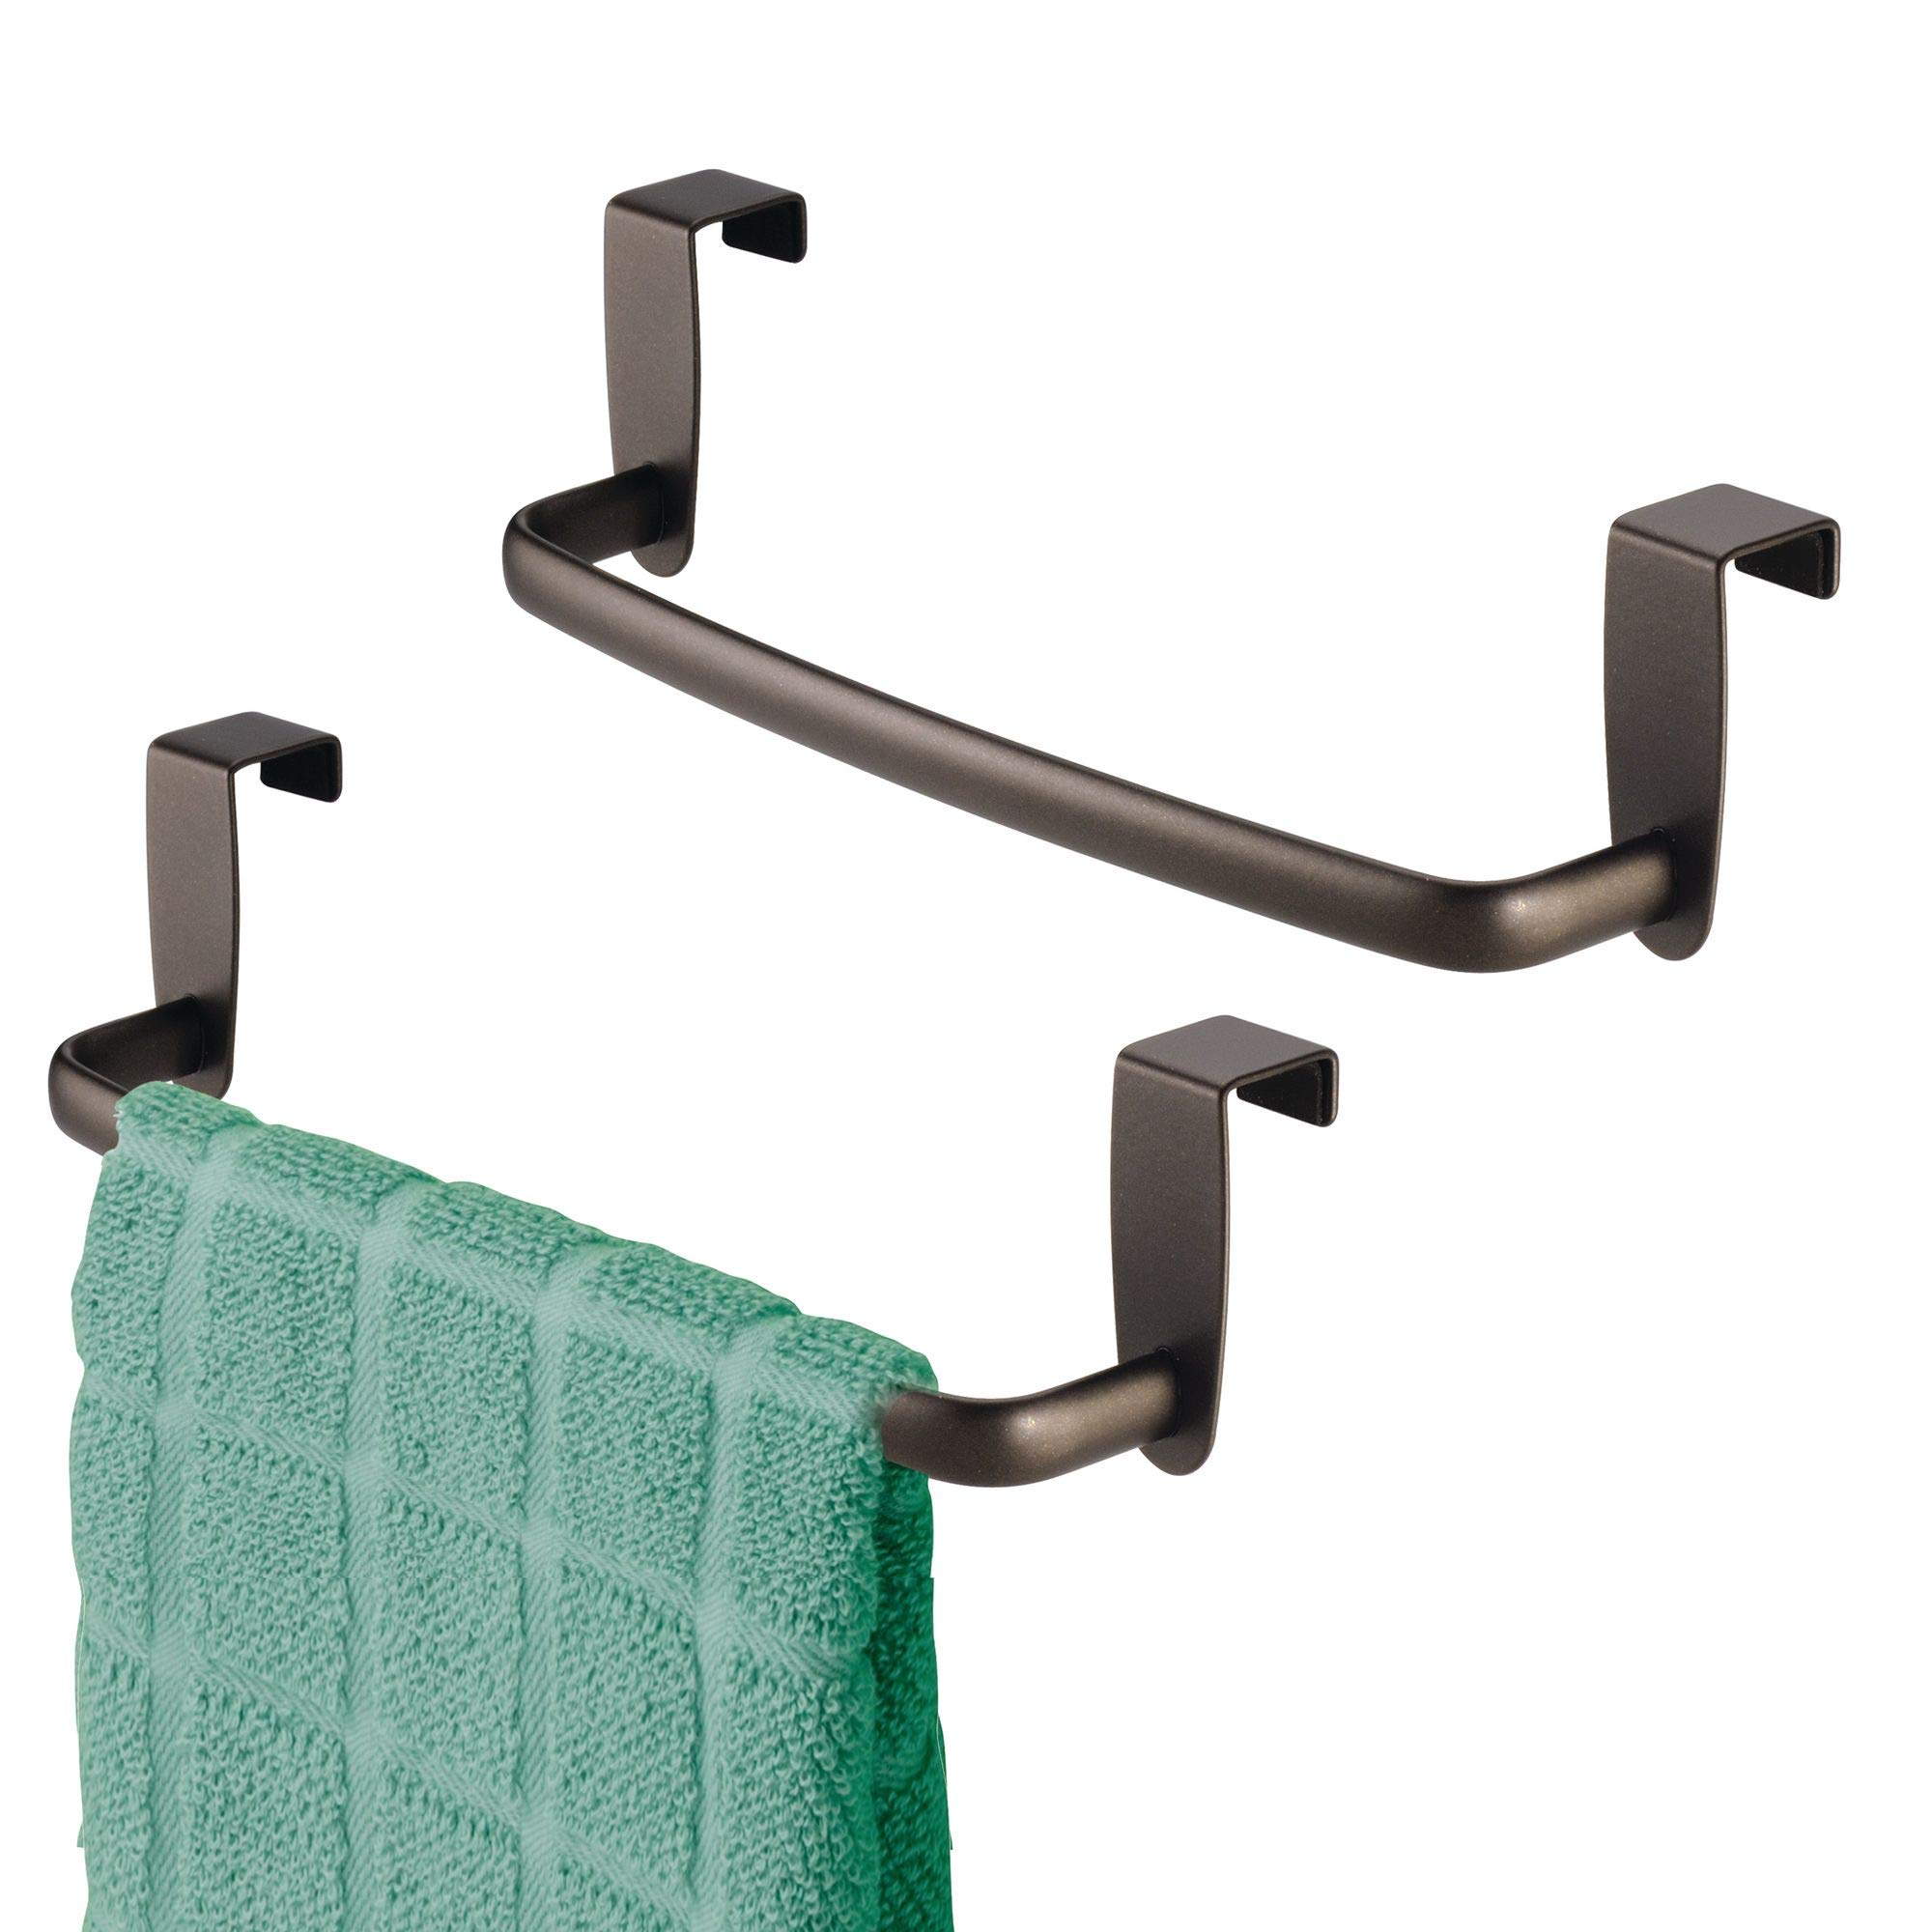 mDesign Over The Cabinet Kitchen Dish Towel Bar Holder - Pack of 2, Bronze